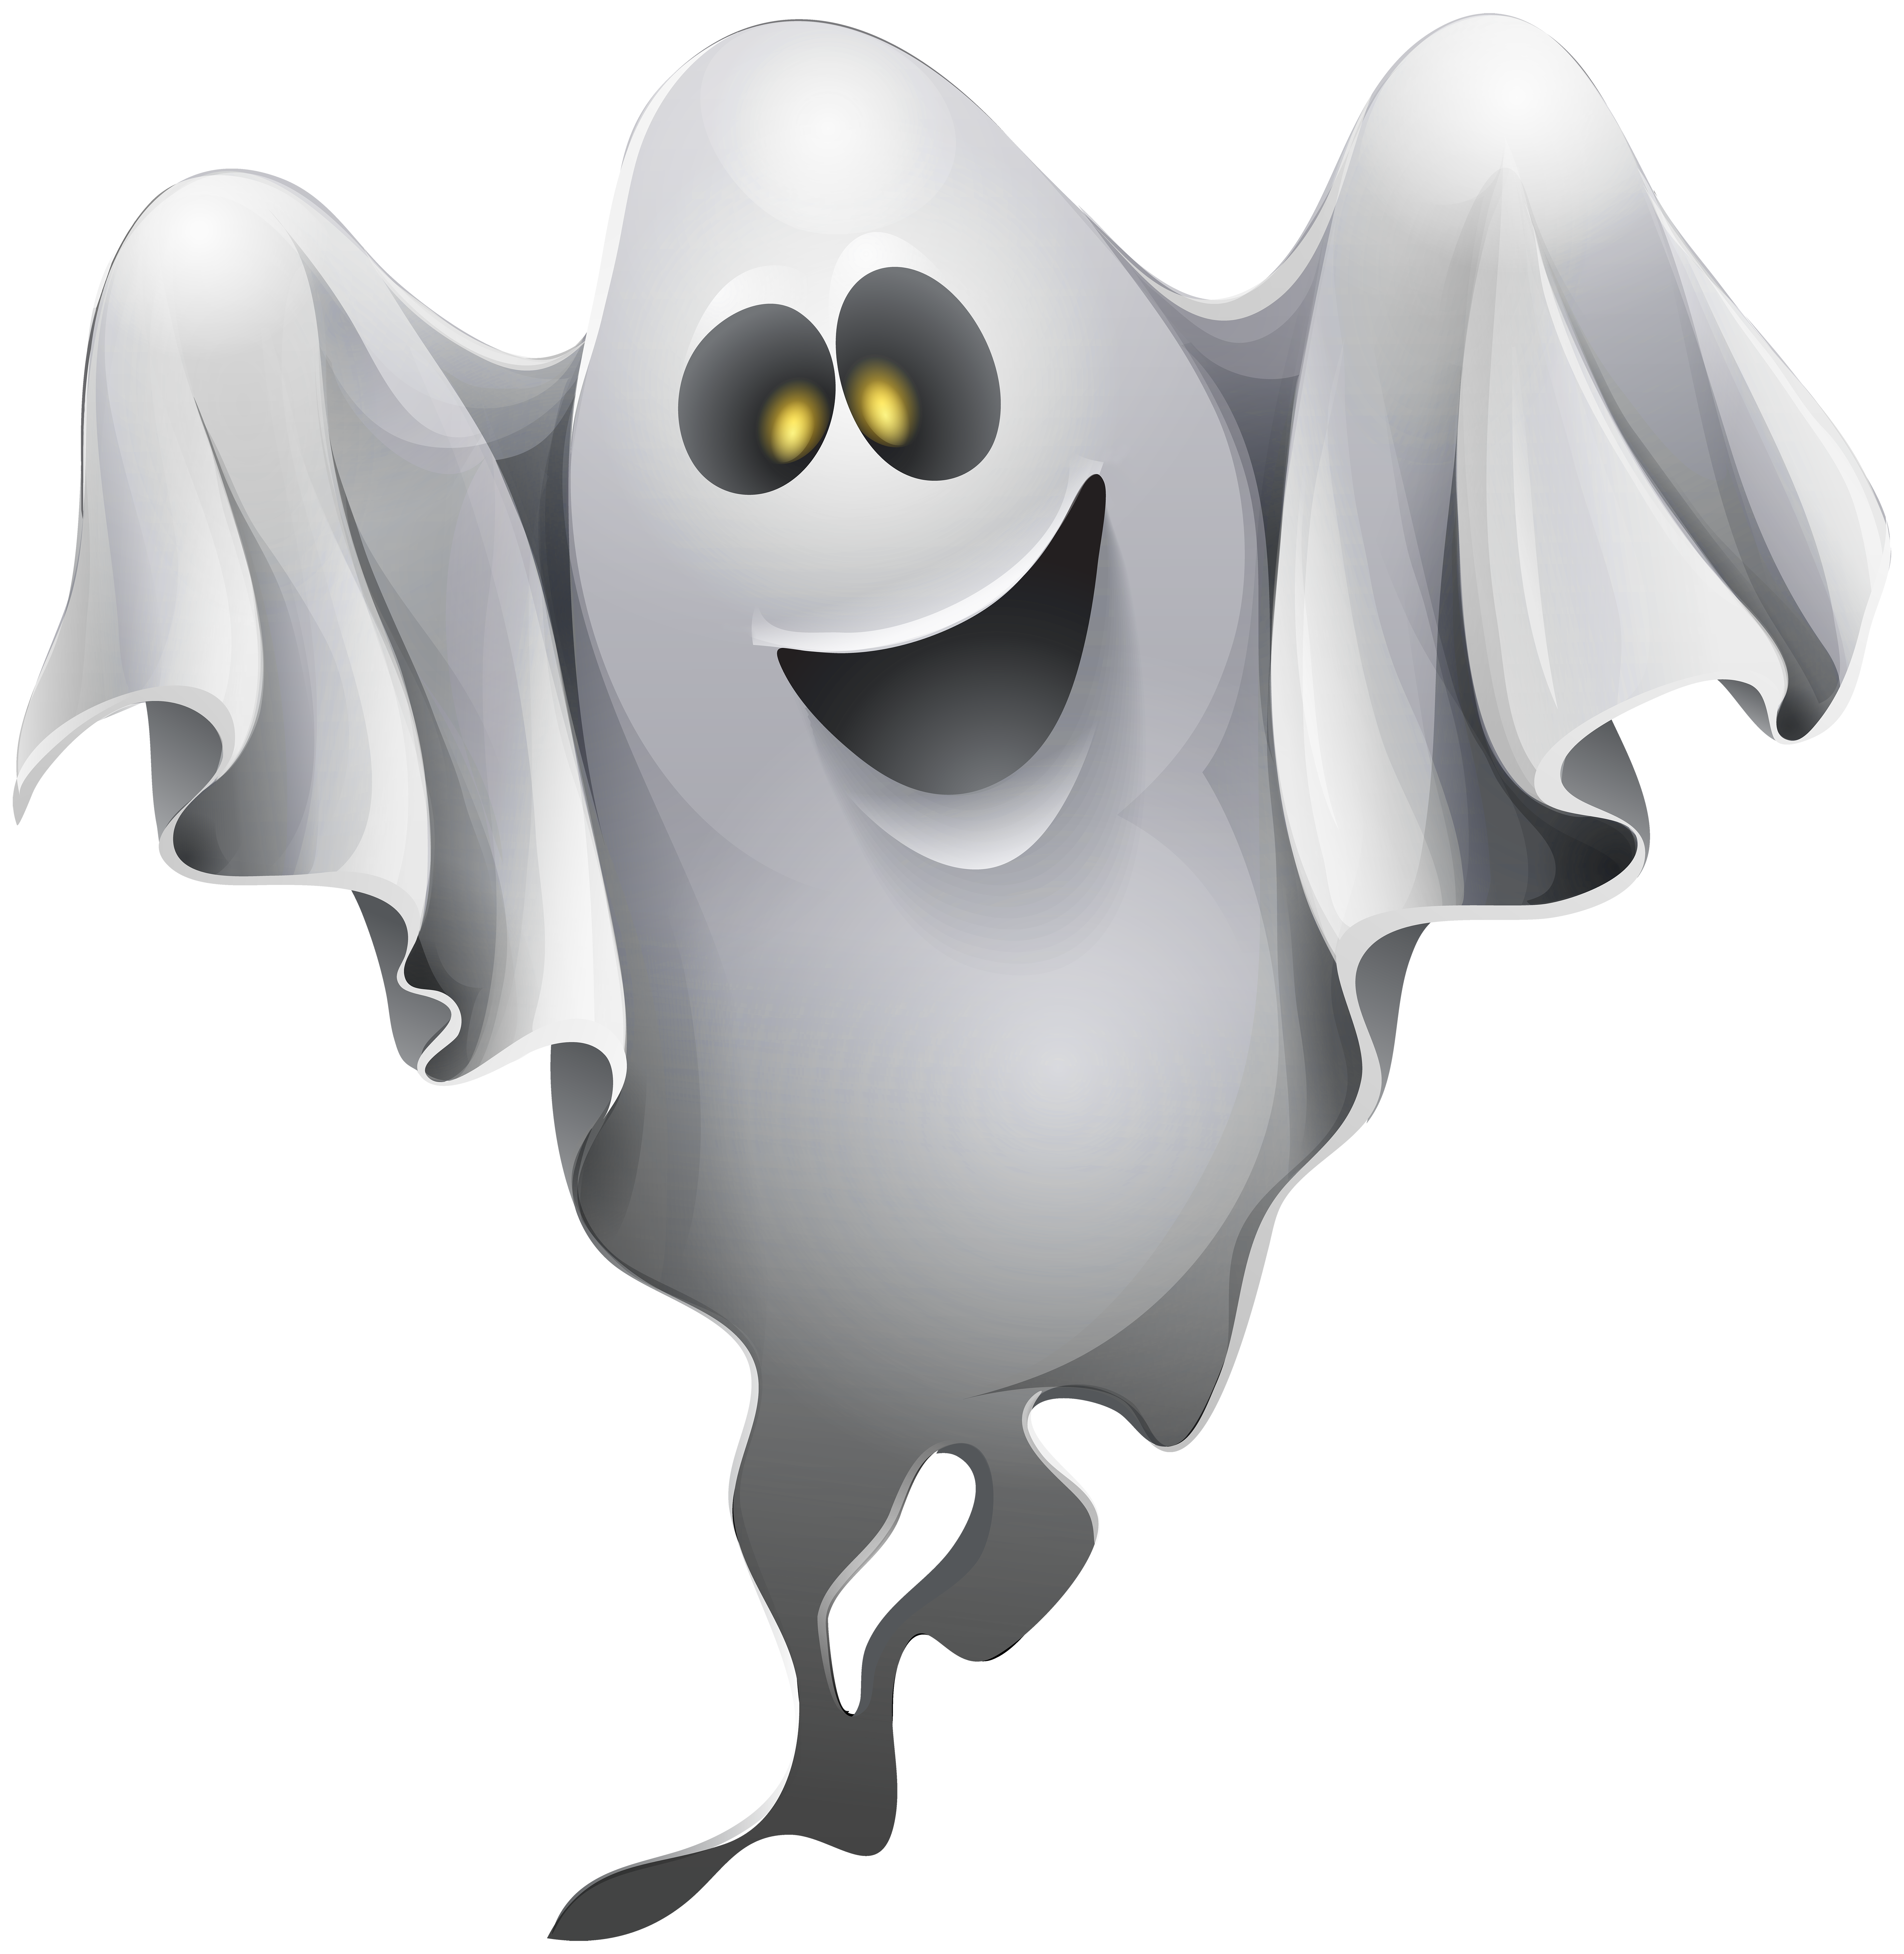 Free transparent png clipart vector royalty free library Halloween Ghost Clipart PNG Image - PurePNG | Free transparent CC0 ... vector royalty free library